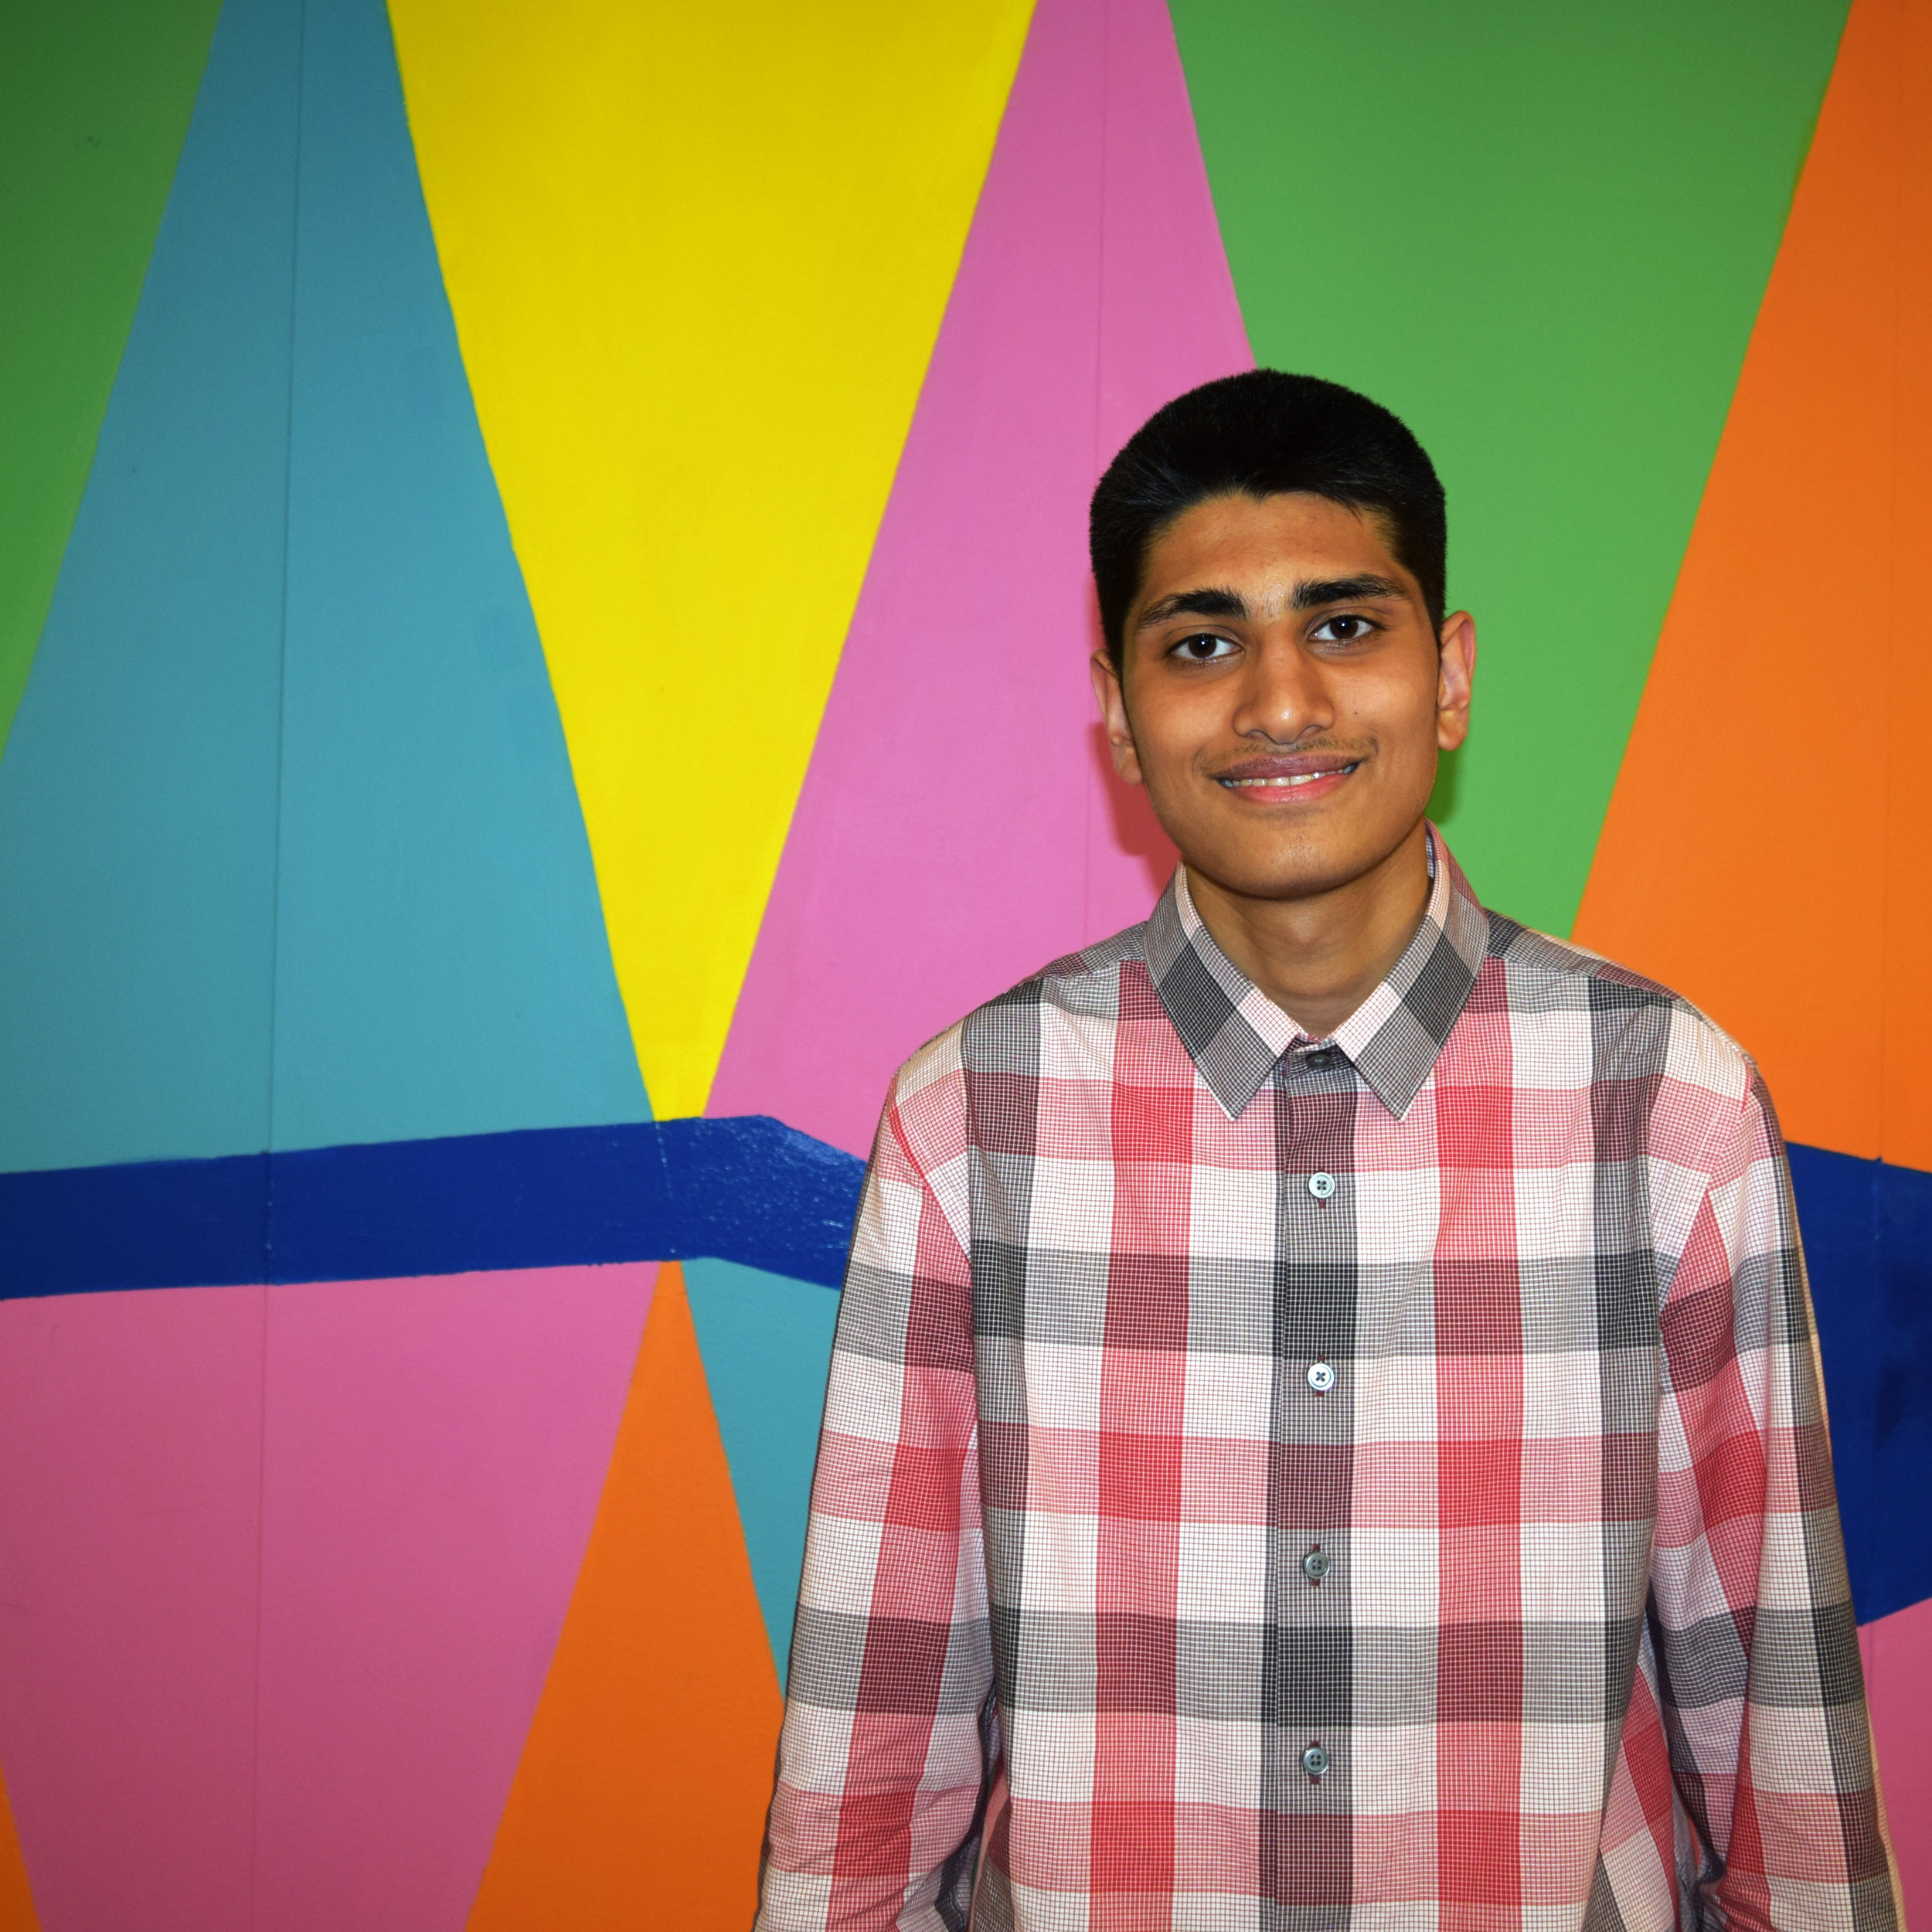 High School Junior    Muntafa Rahman    plans to pursue a degree in computer engineering, but he recognizes that college is just one possible path to success.